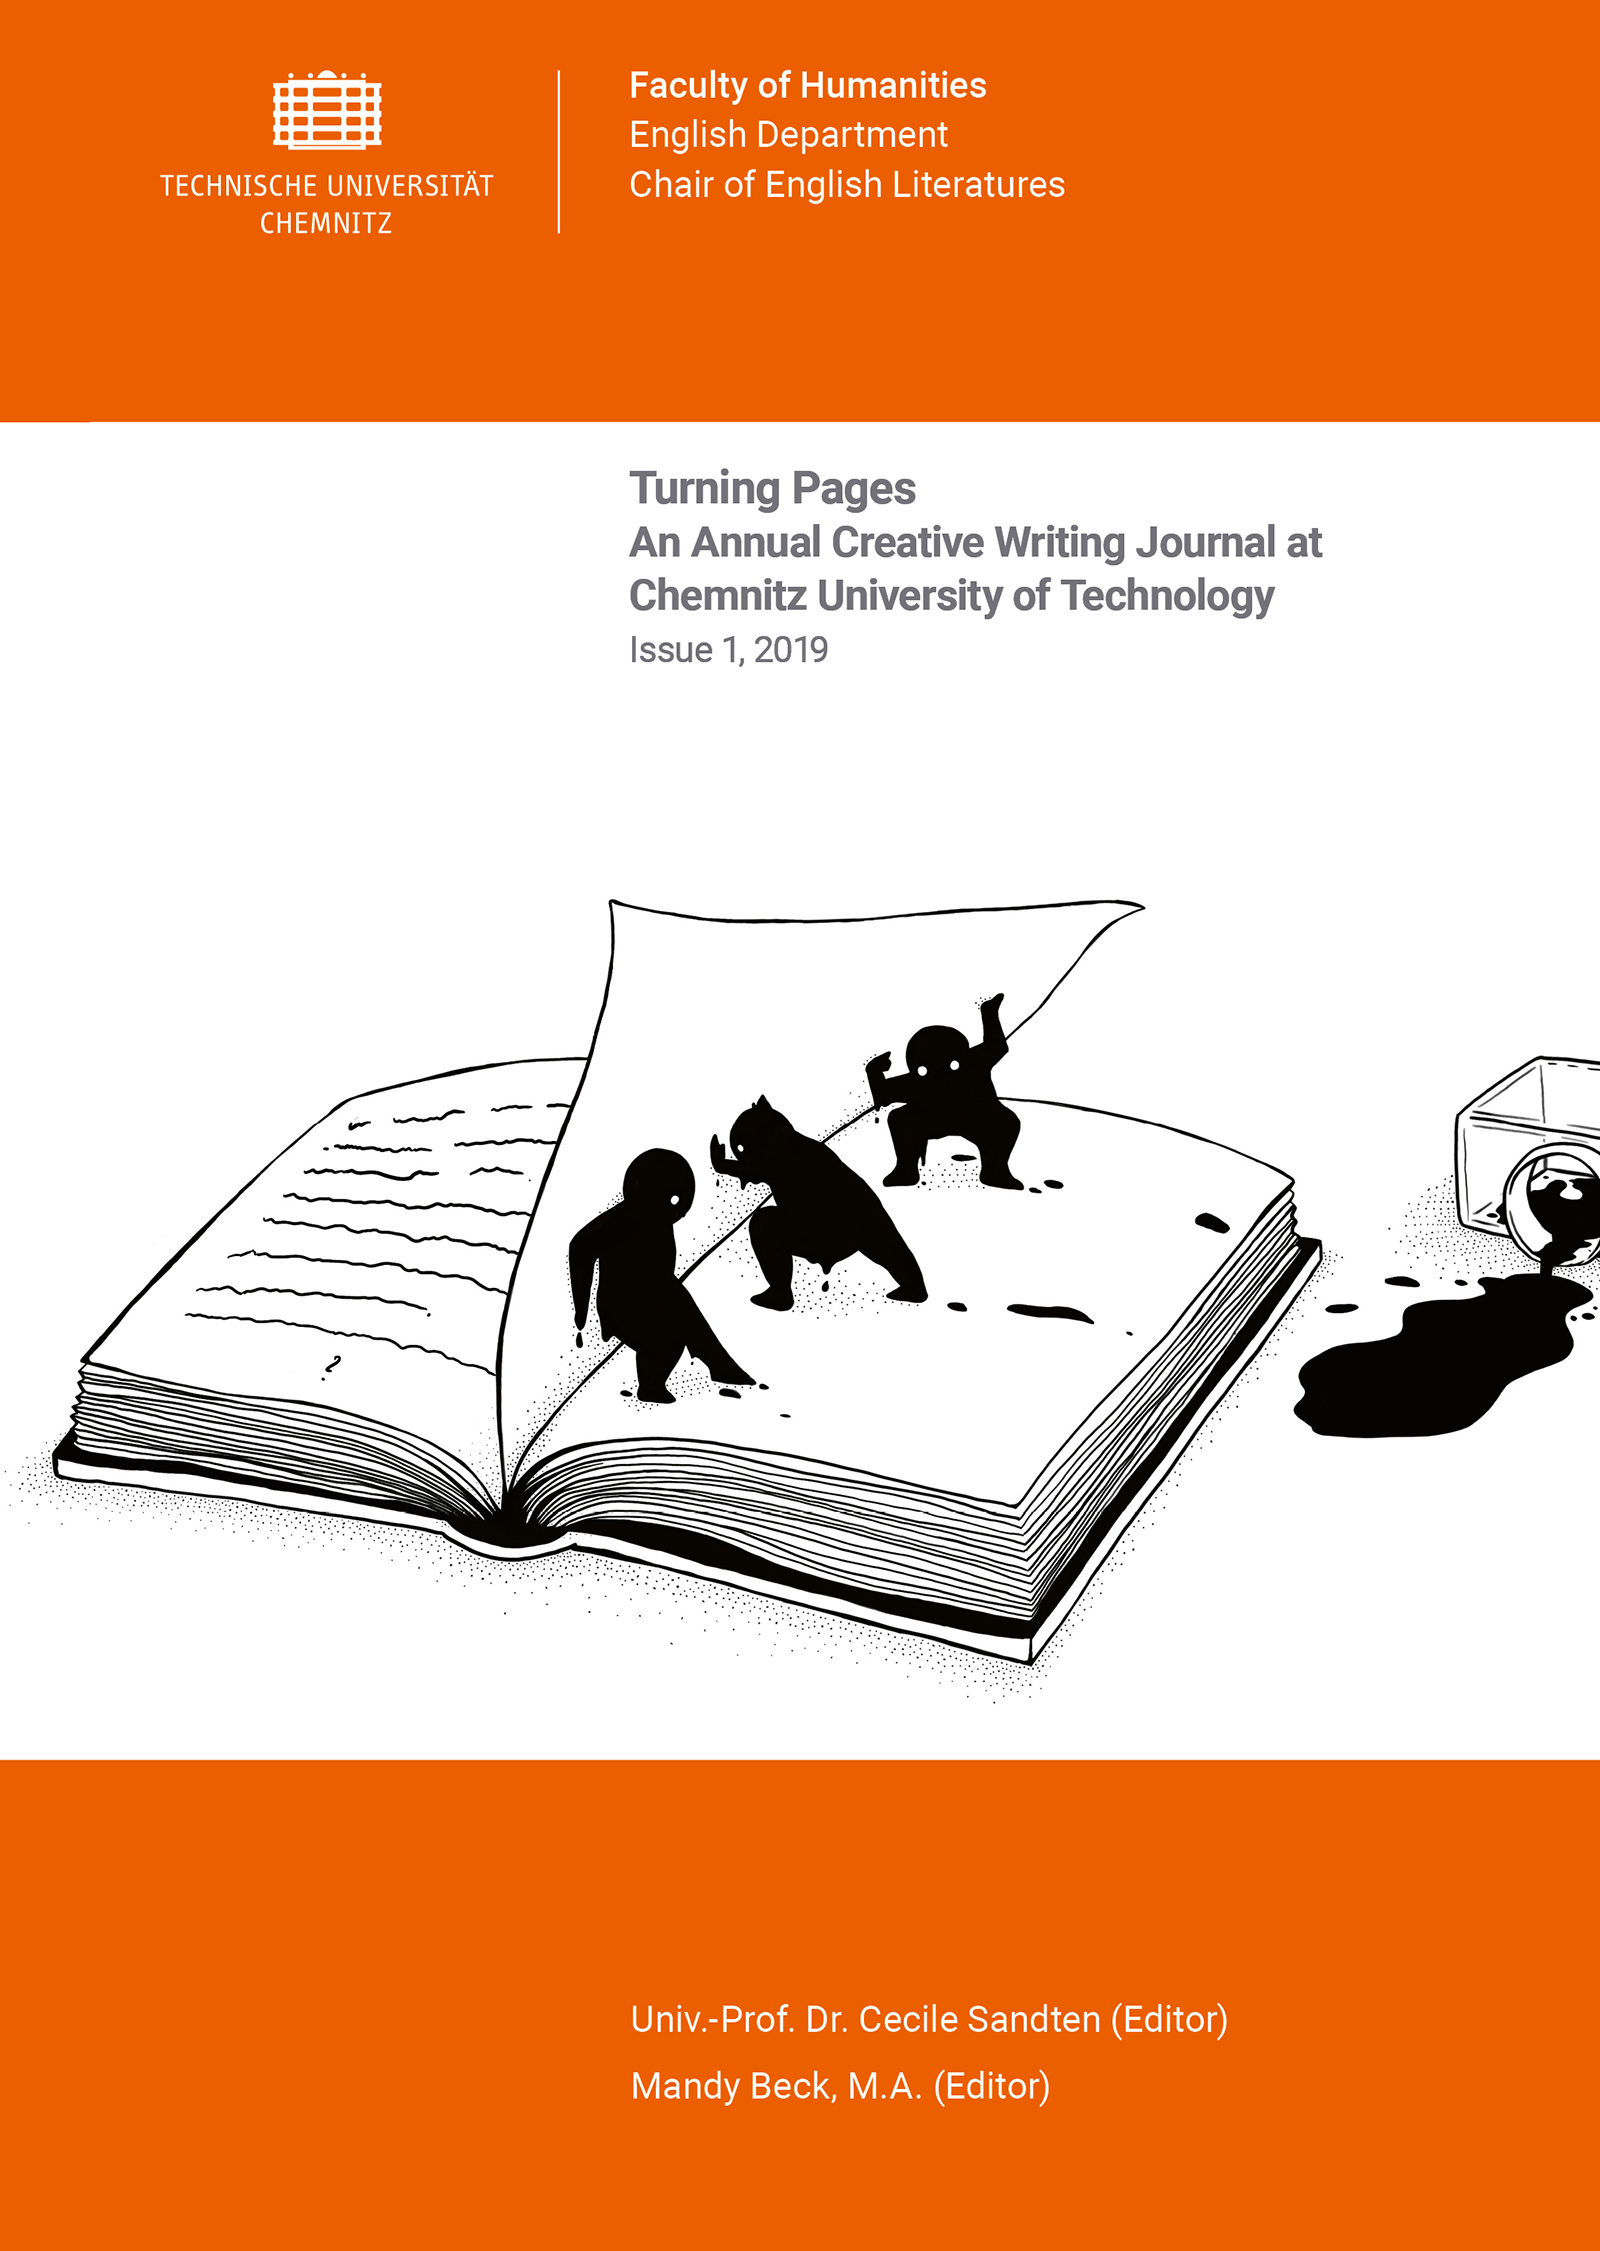 Cover: Turning Pages, Issue 1, 2019 / Editors: Cecile Sandten, Mandy Beck